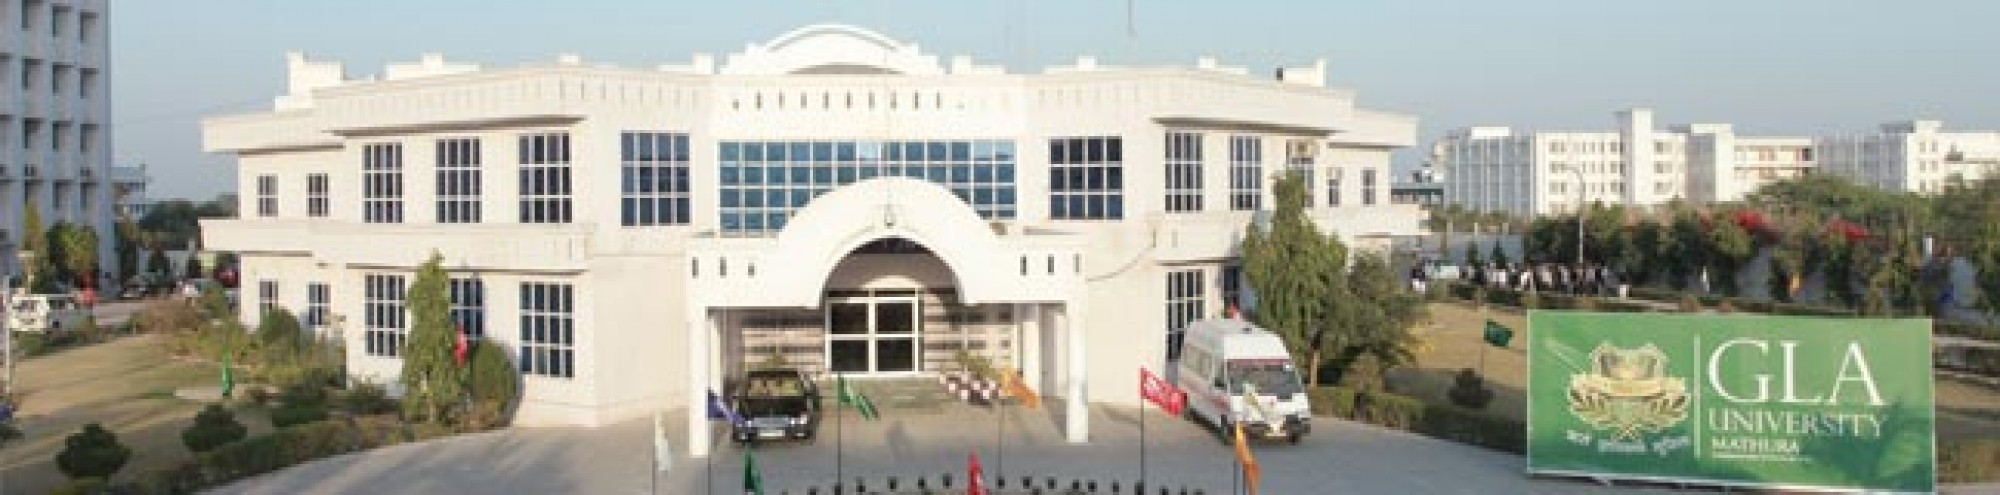 Institute of Applied Sciences and Humanities, GLA University, Mathura